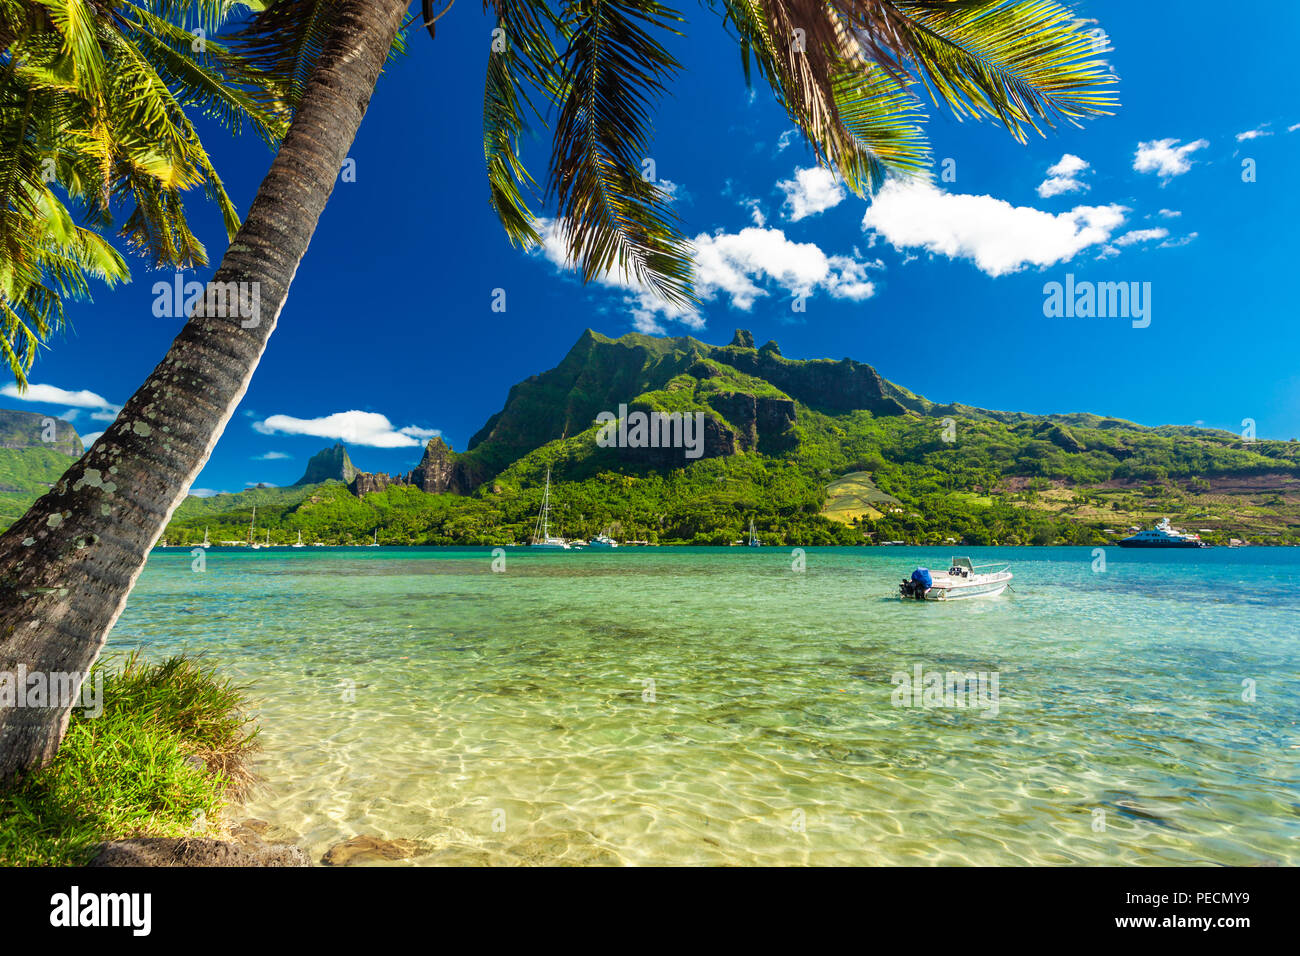 Palm Trees on Shoreline of Ocean at Moorea in Tahiti with mountain view - Stock Image